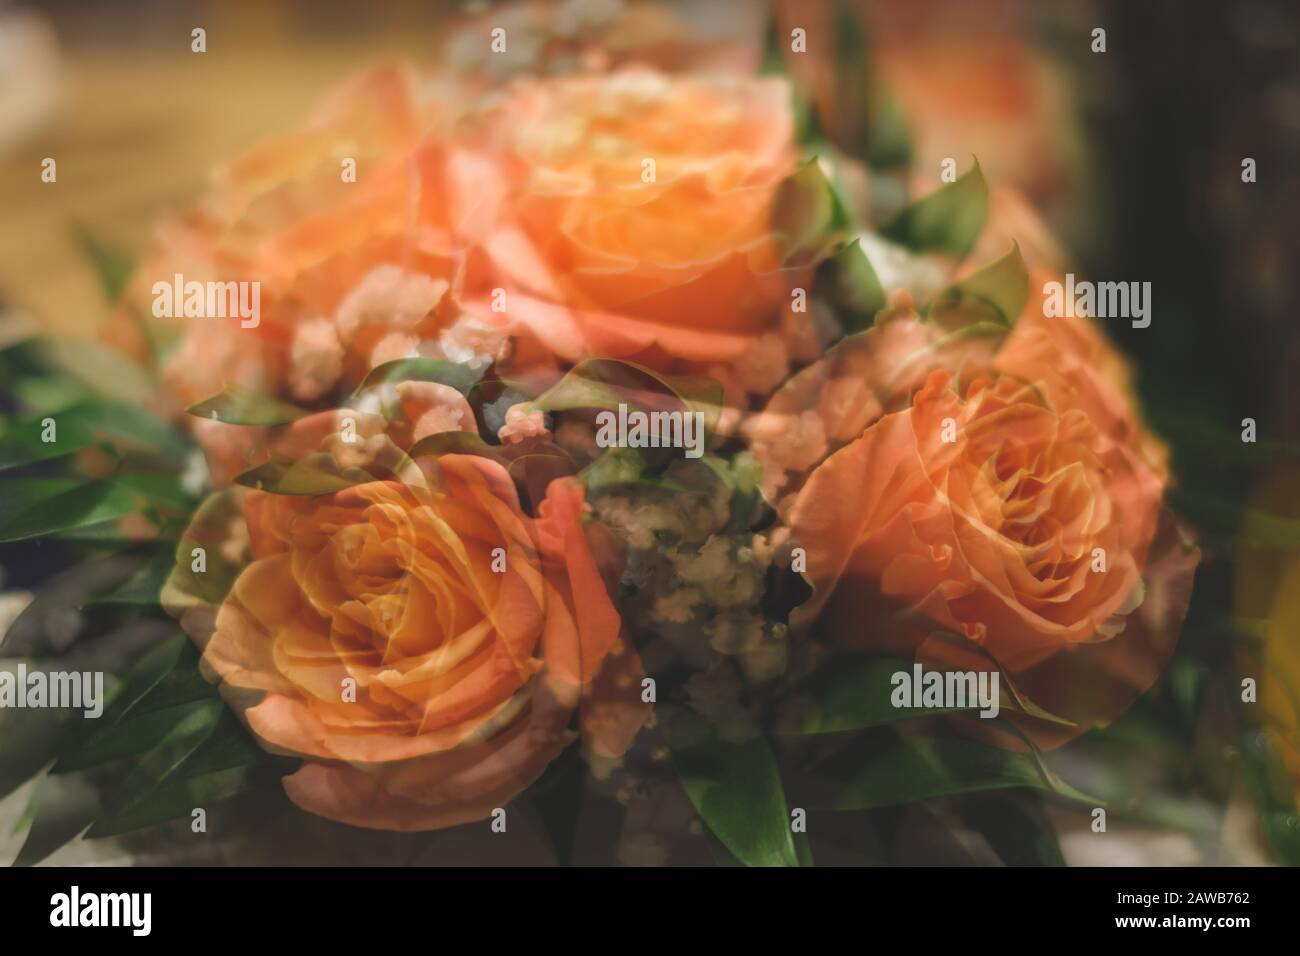 Bouquet of roses with double exposure abstract background. blurred flowers Stock Photo